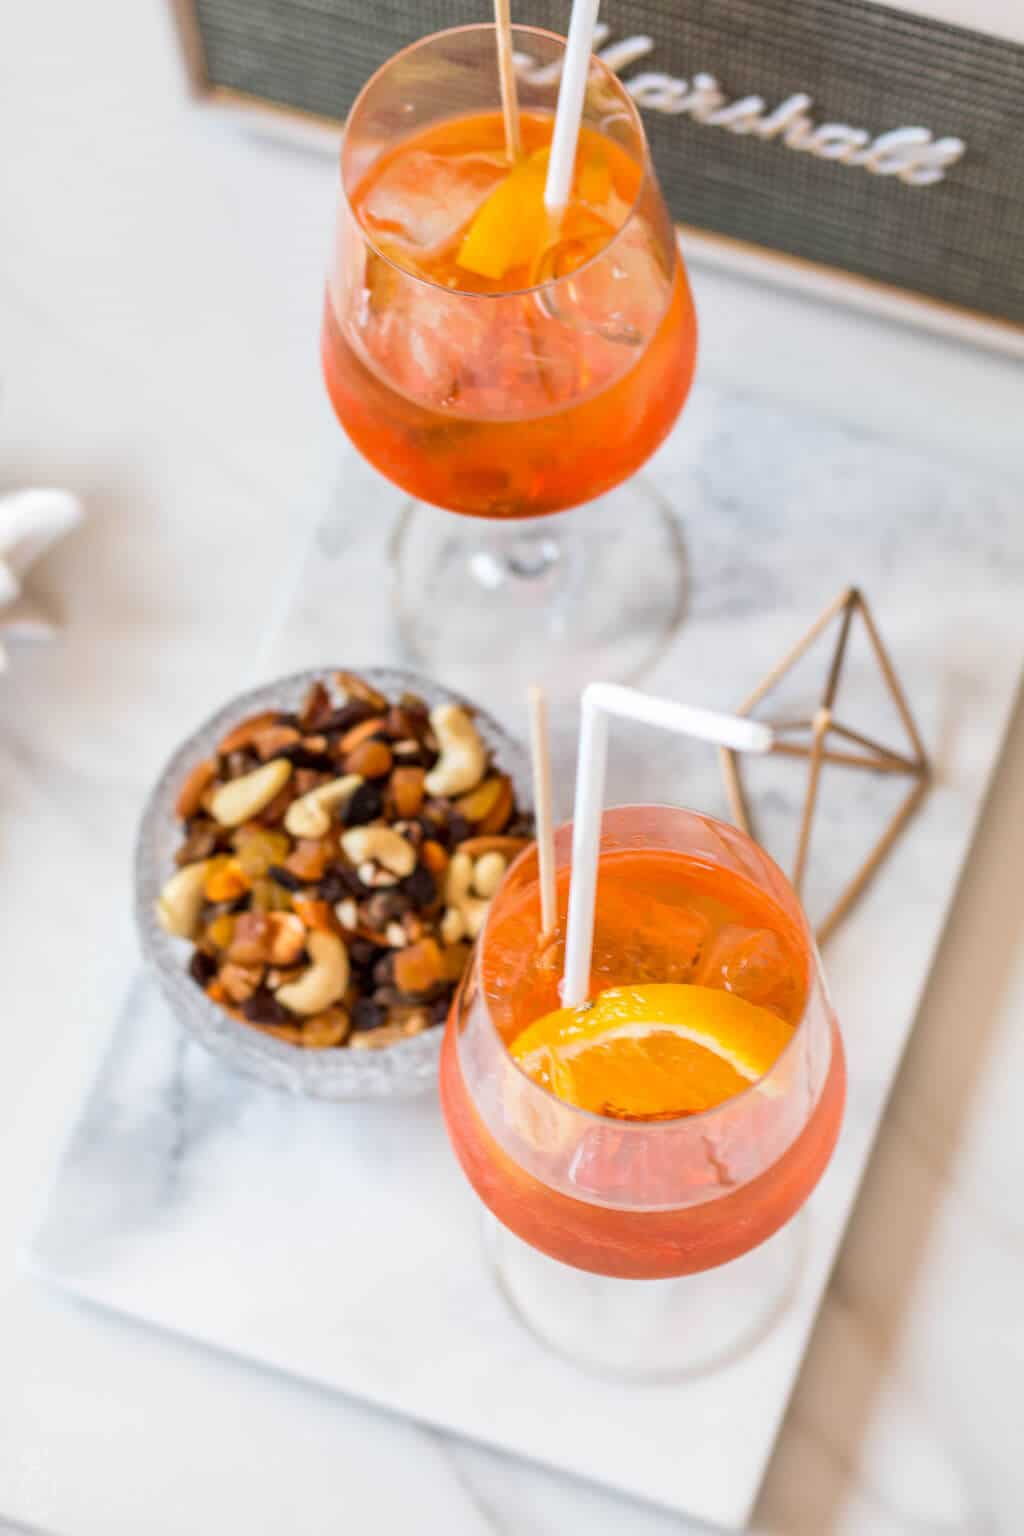 Aperol Spritz recipe - how to make the Italian refreshing & easy summer cocktail at home - Click on the photo for the full recipe @ hedonistit.com